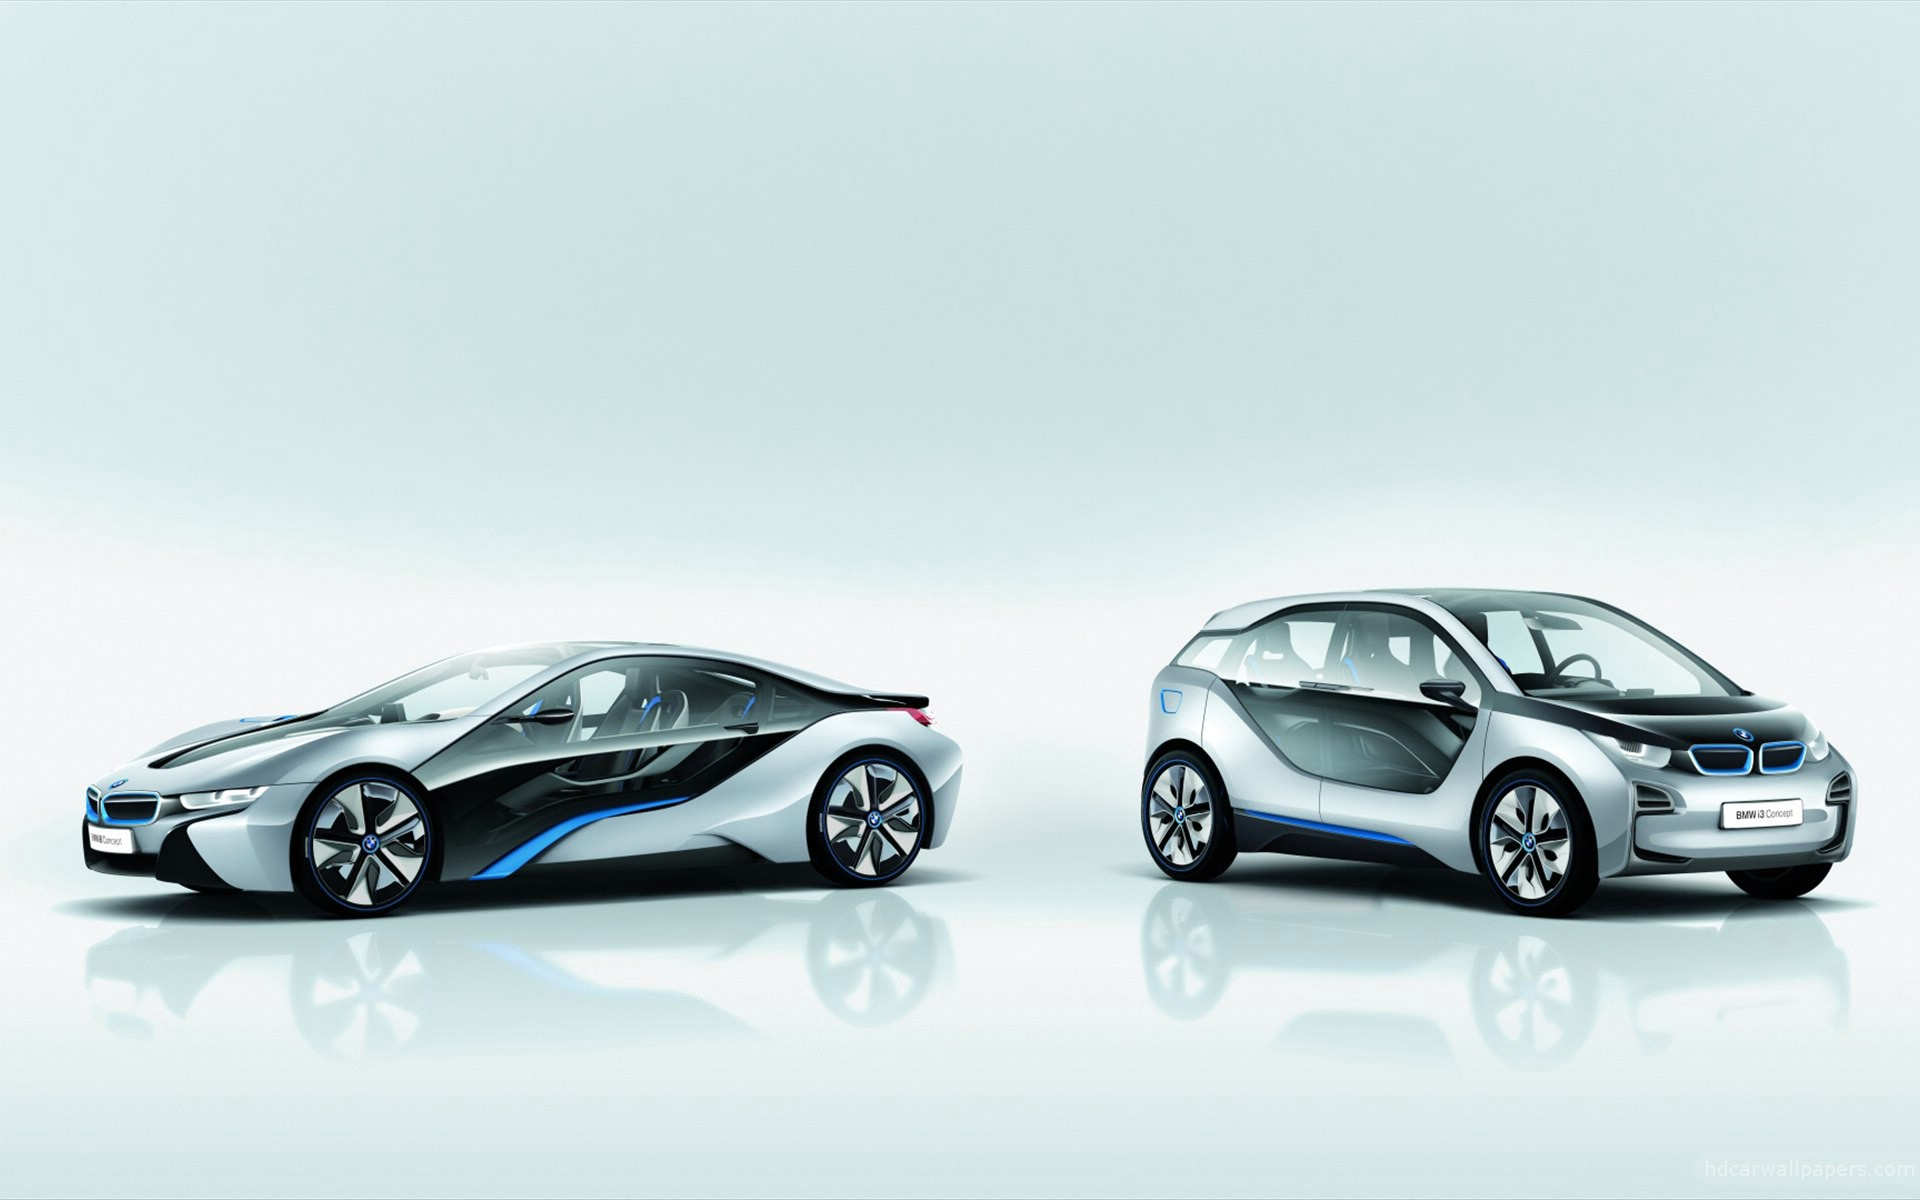 1920x1200 - BMW i3 Concept Wallpapers 10